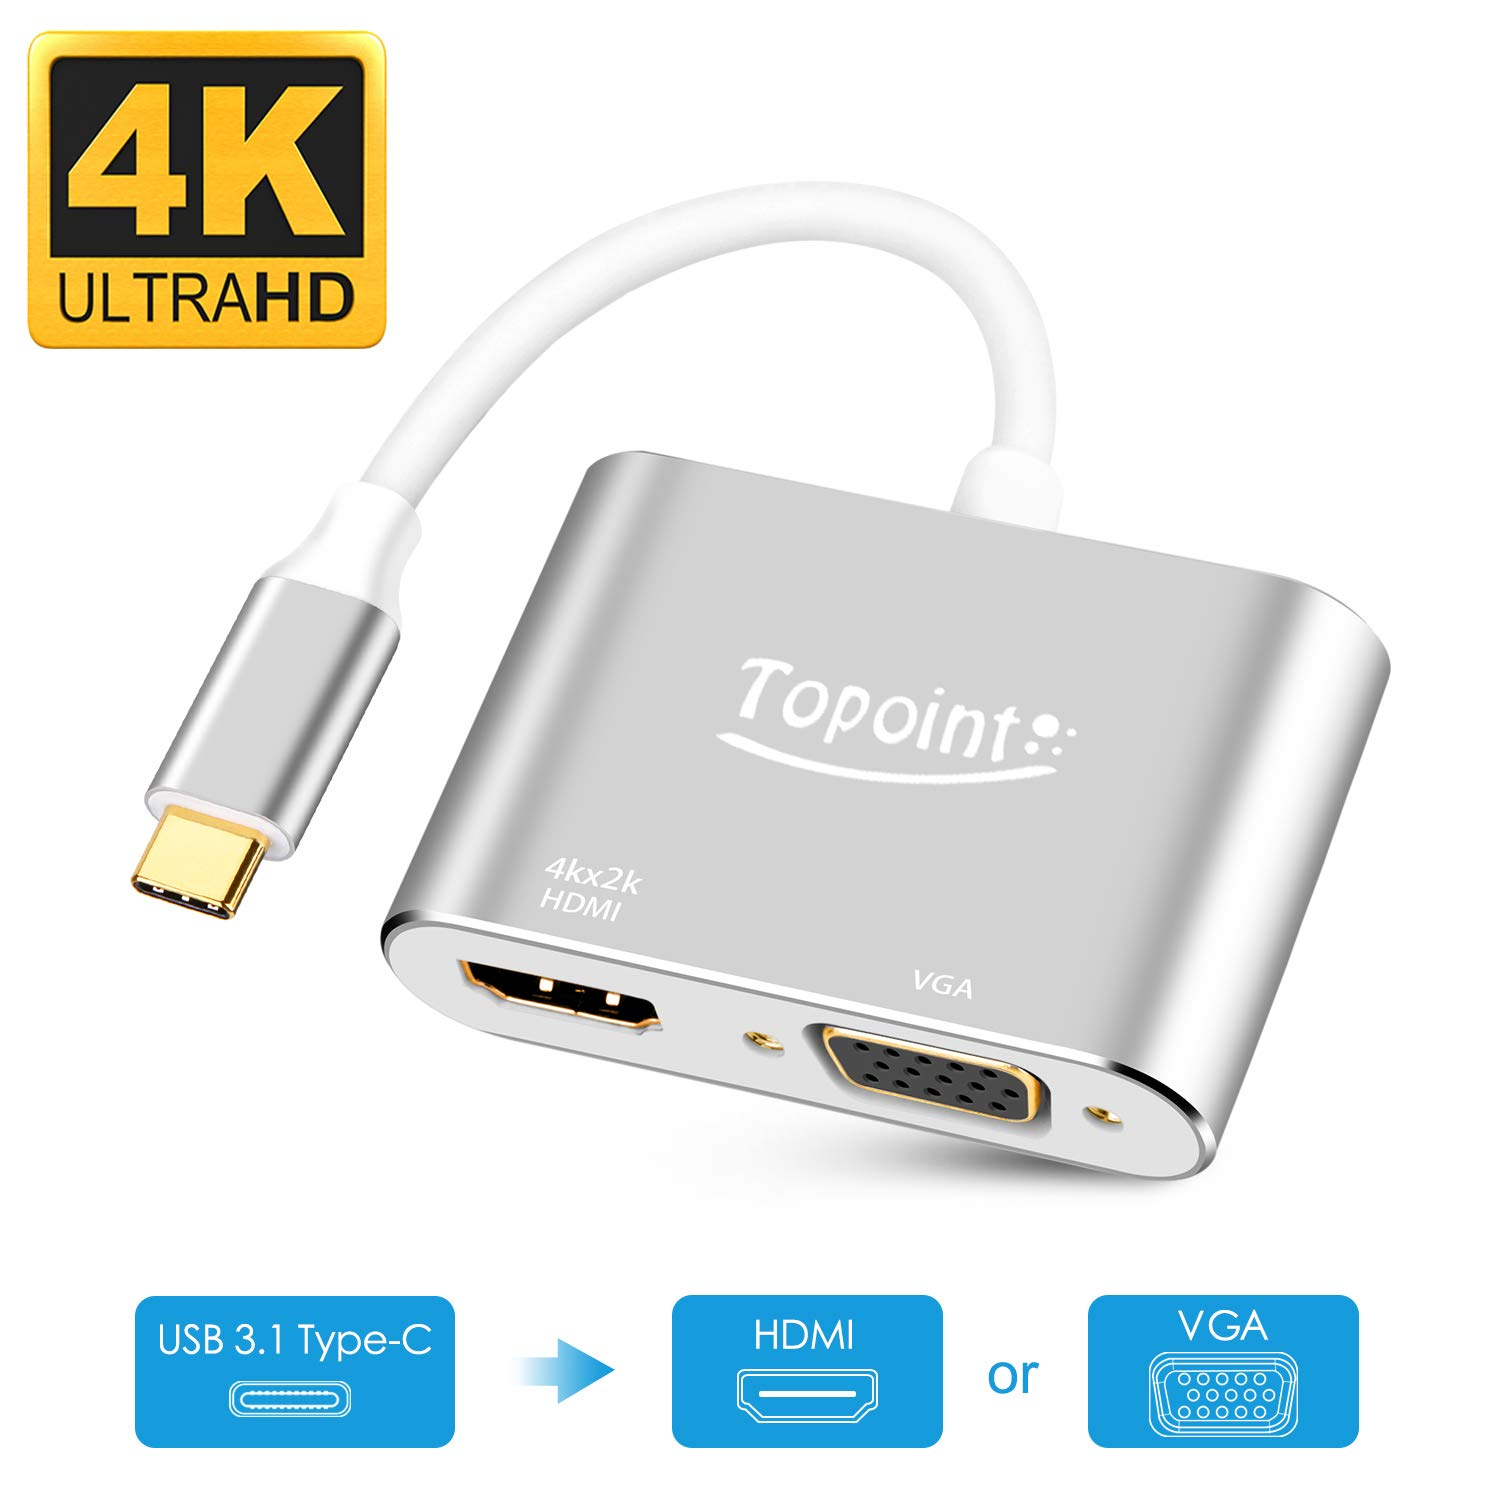 USB C to HDMI VGA Adapter, WU-MINGLU USB 3.1 Typ C to VGA HDMI UHD Video Converter Adapter for 2018 iPad Pro/MacBook Pro/Chromebook Pixel/Samsung Galaxy S8 S9/Dell XPS/Lenovo 900/Acer